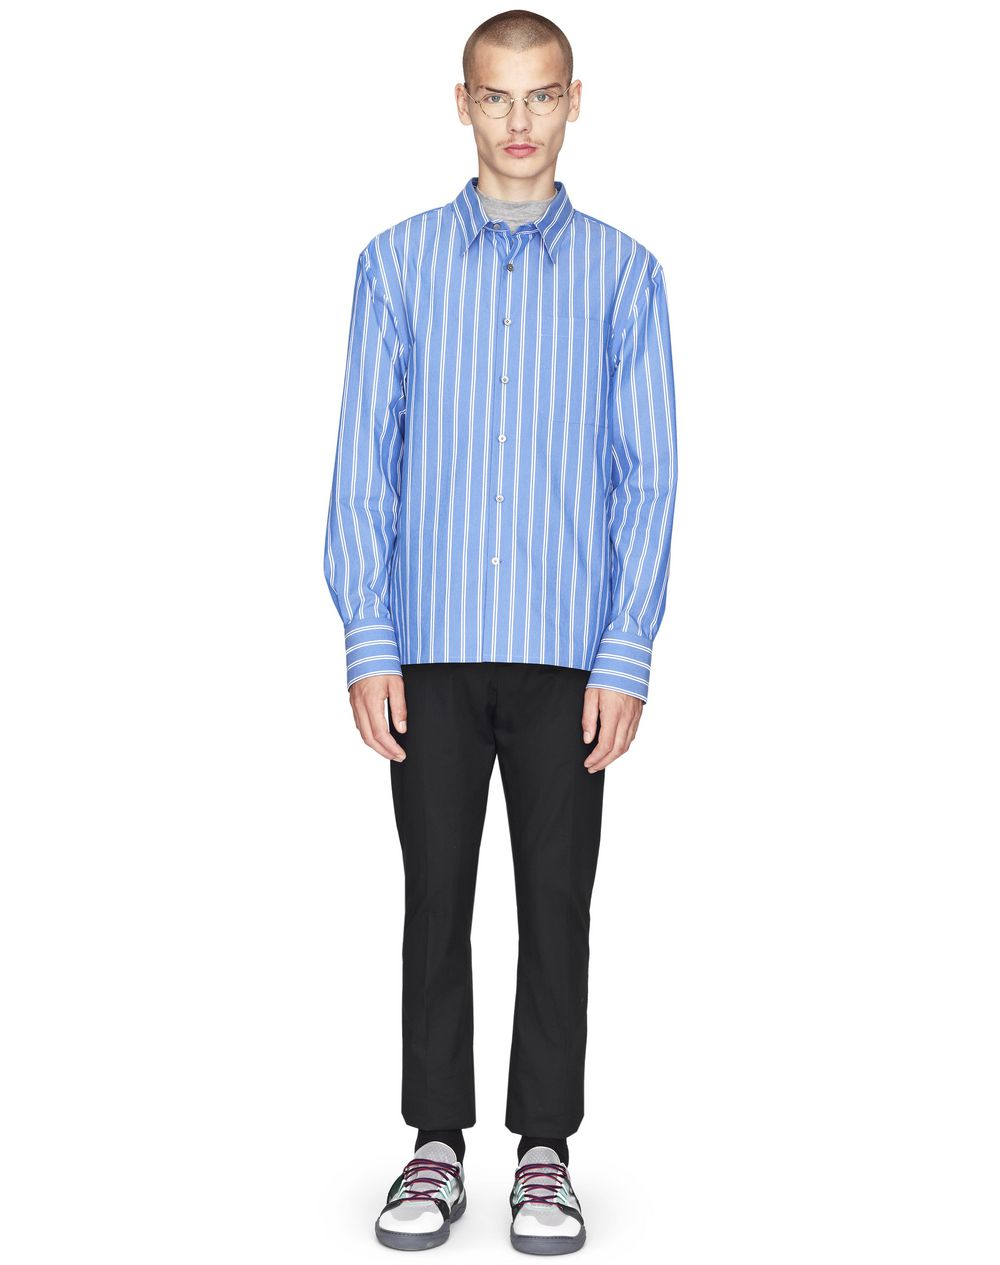 OVERSIZED DECKCHAIR-STRIPED SHIRT - Lanvin